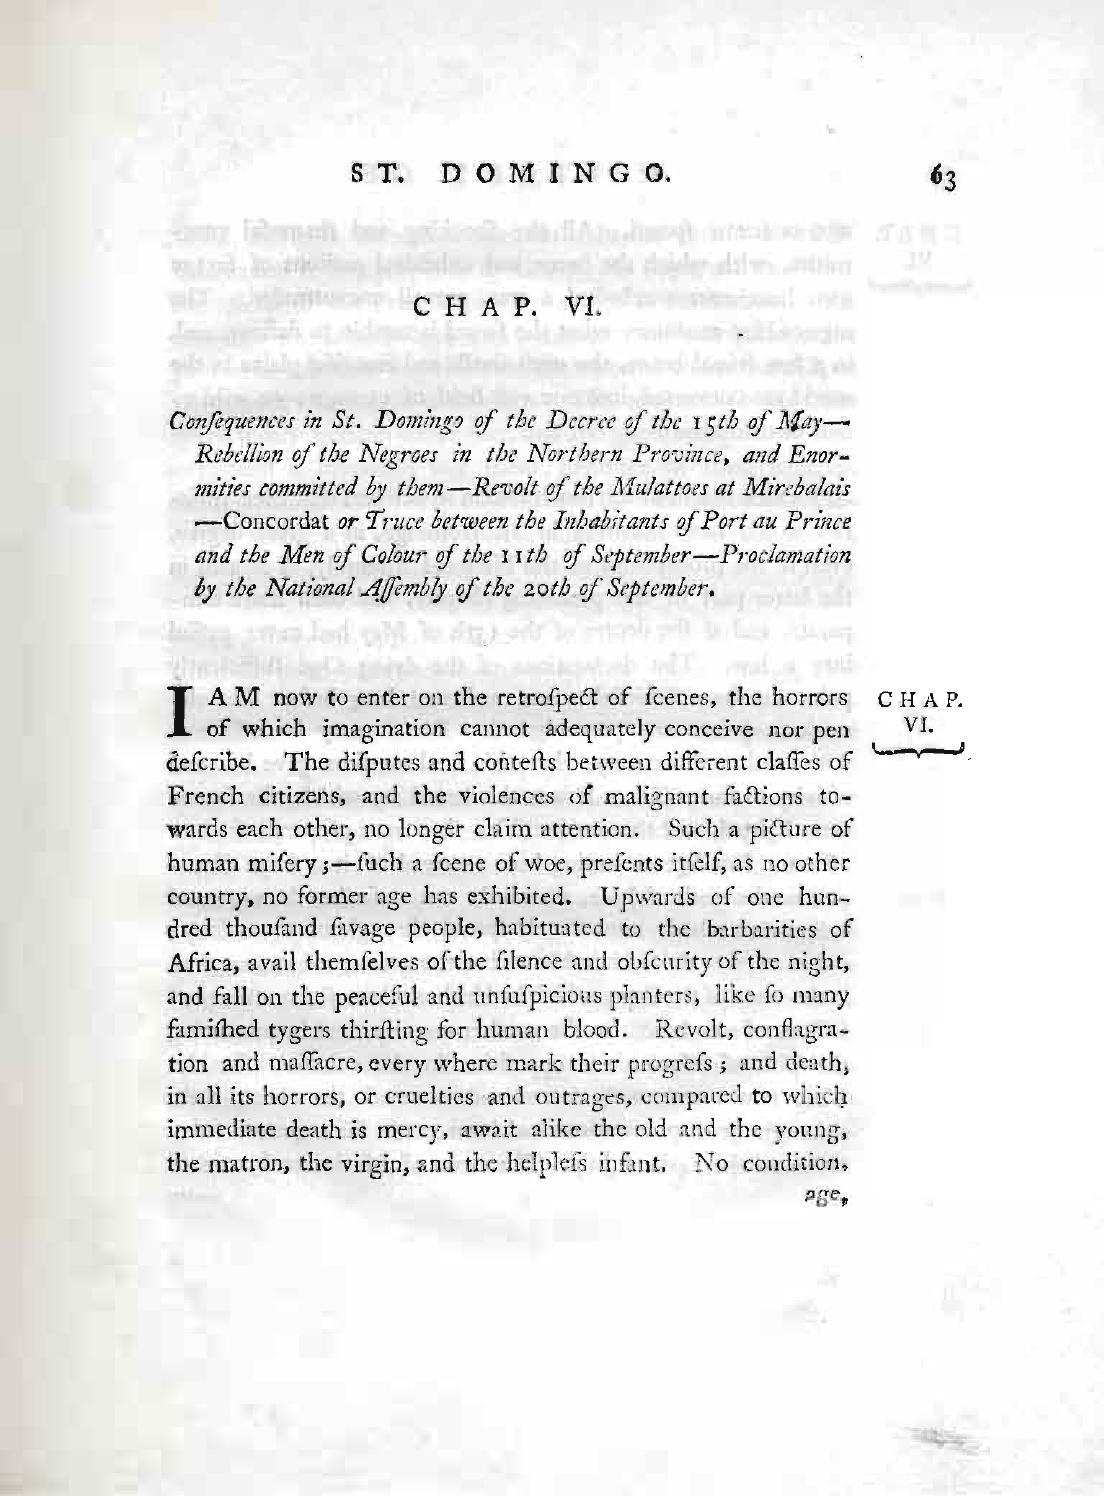 An historical survey of the french colony in the island of St